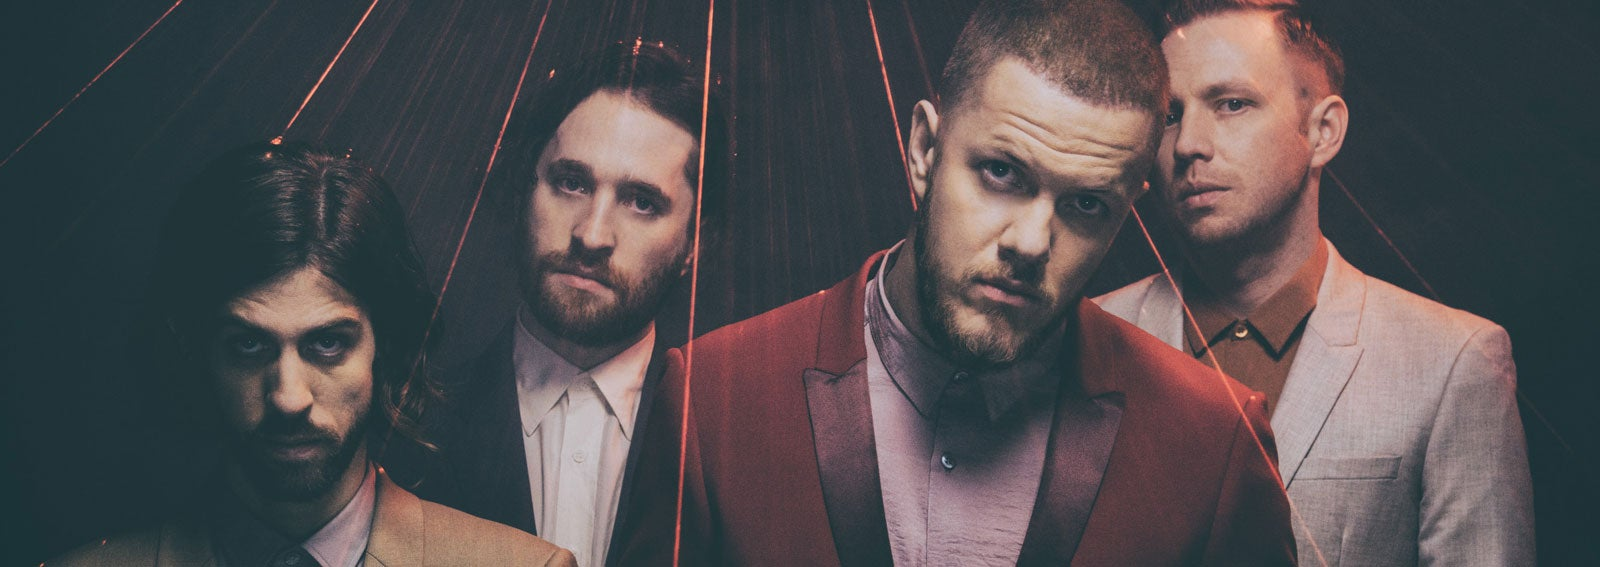 ImagineDragons_1600x567.jpg